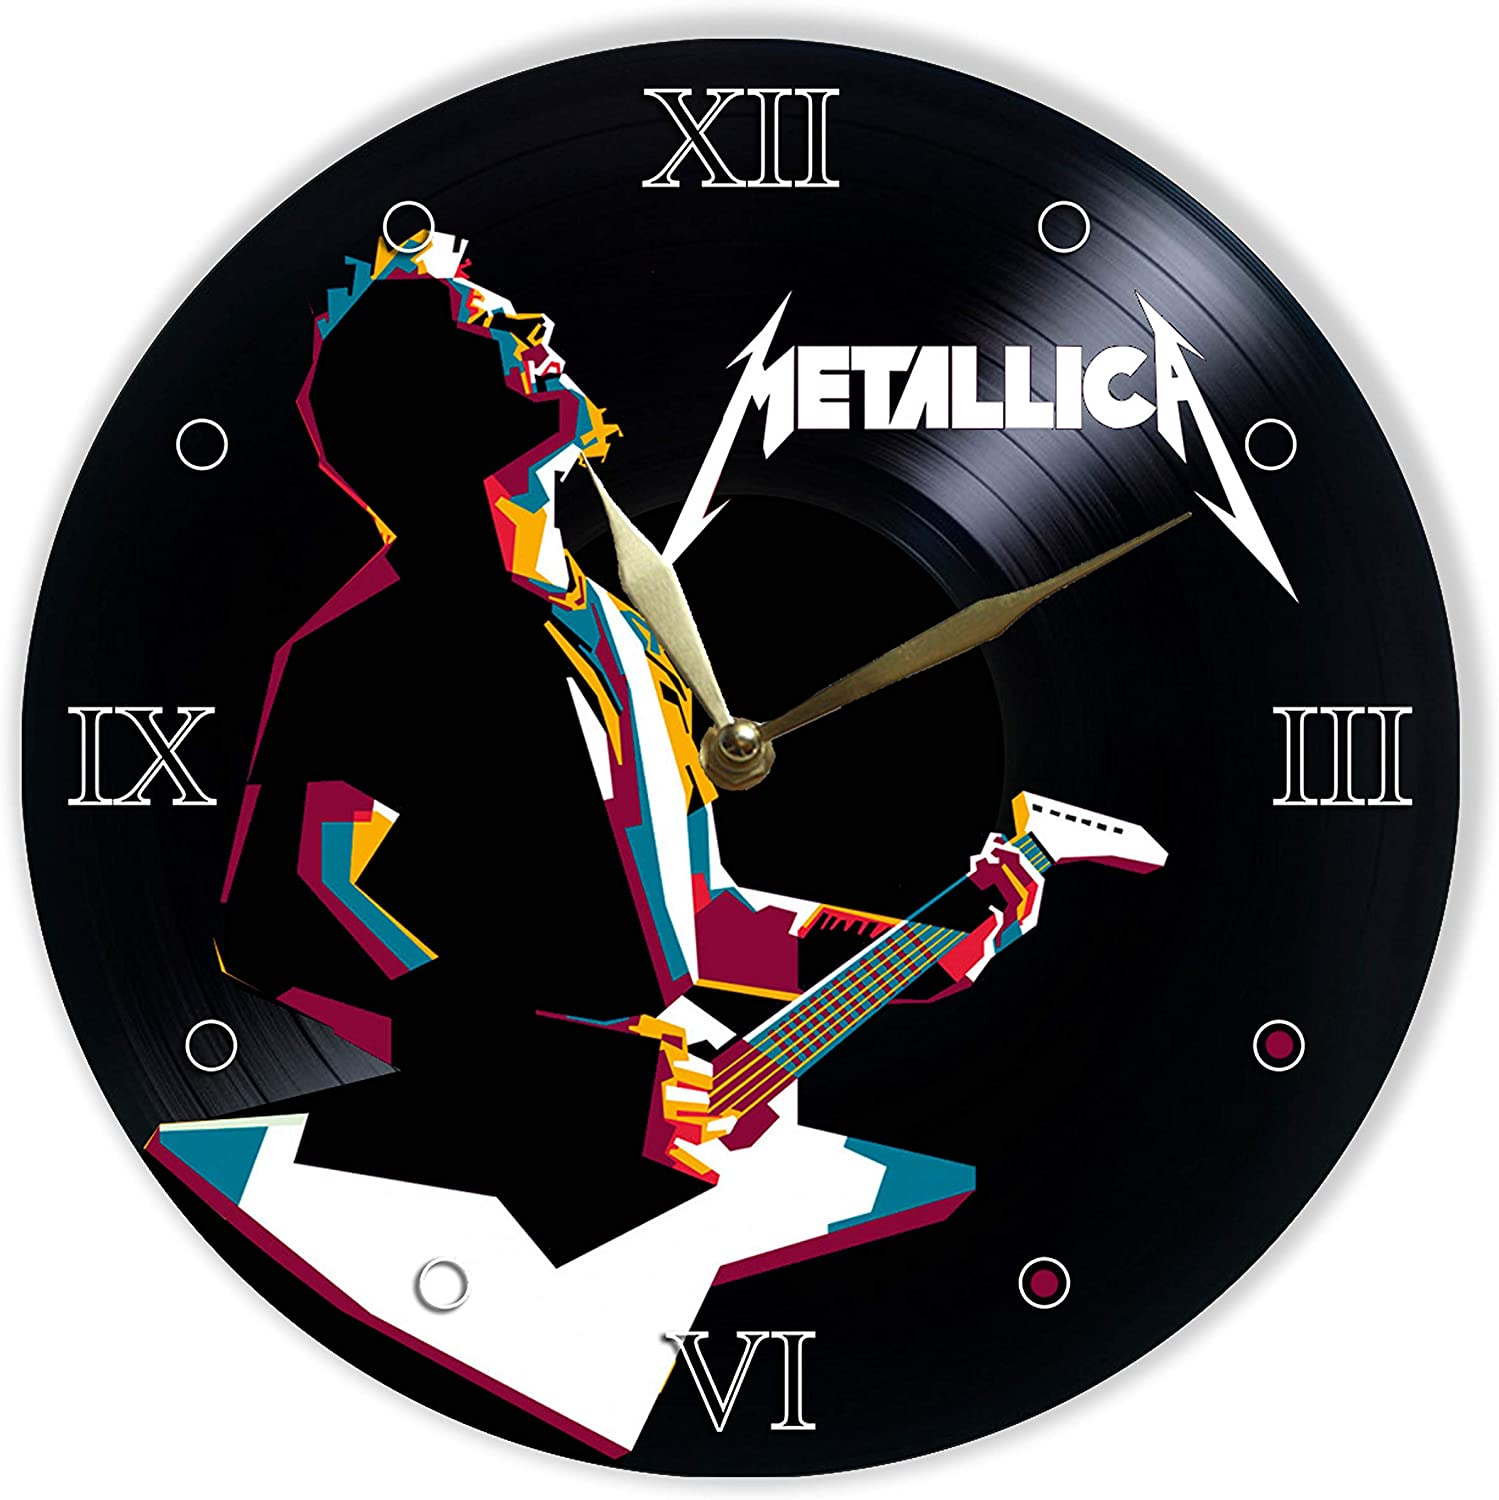 """Metallica Painted Vinyl Clock 12"""" - Wall Clock Metallica - Unique Gifts for Fans Metallica - Best Gift for Heavy Metal Music Lover - The Best Home Decor"""